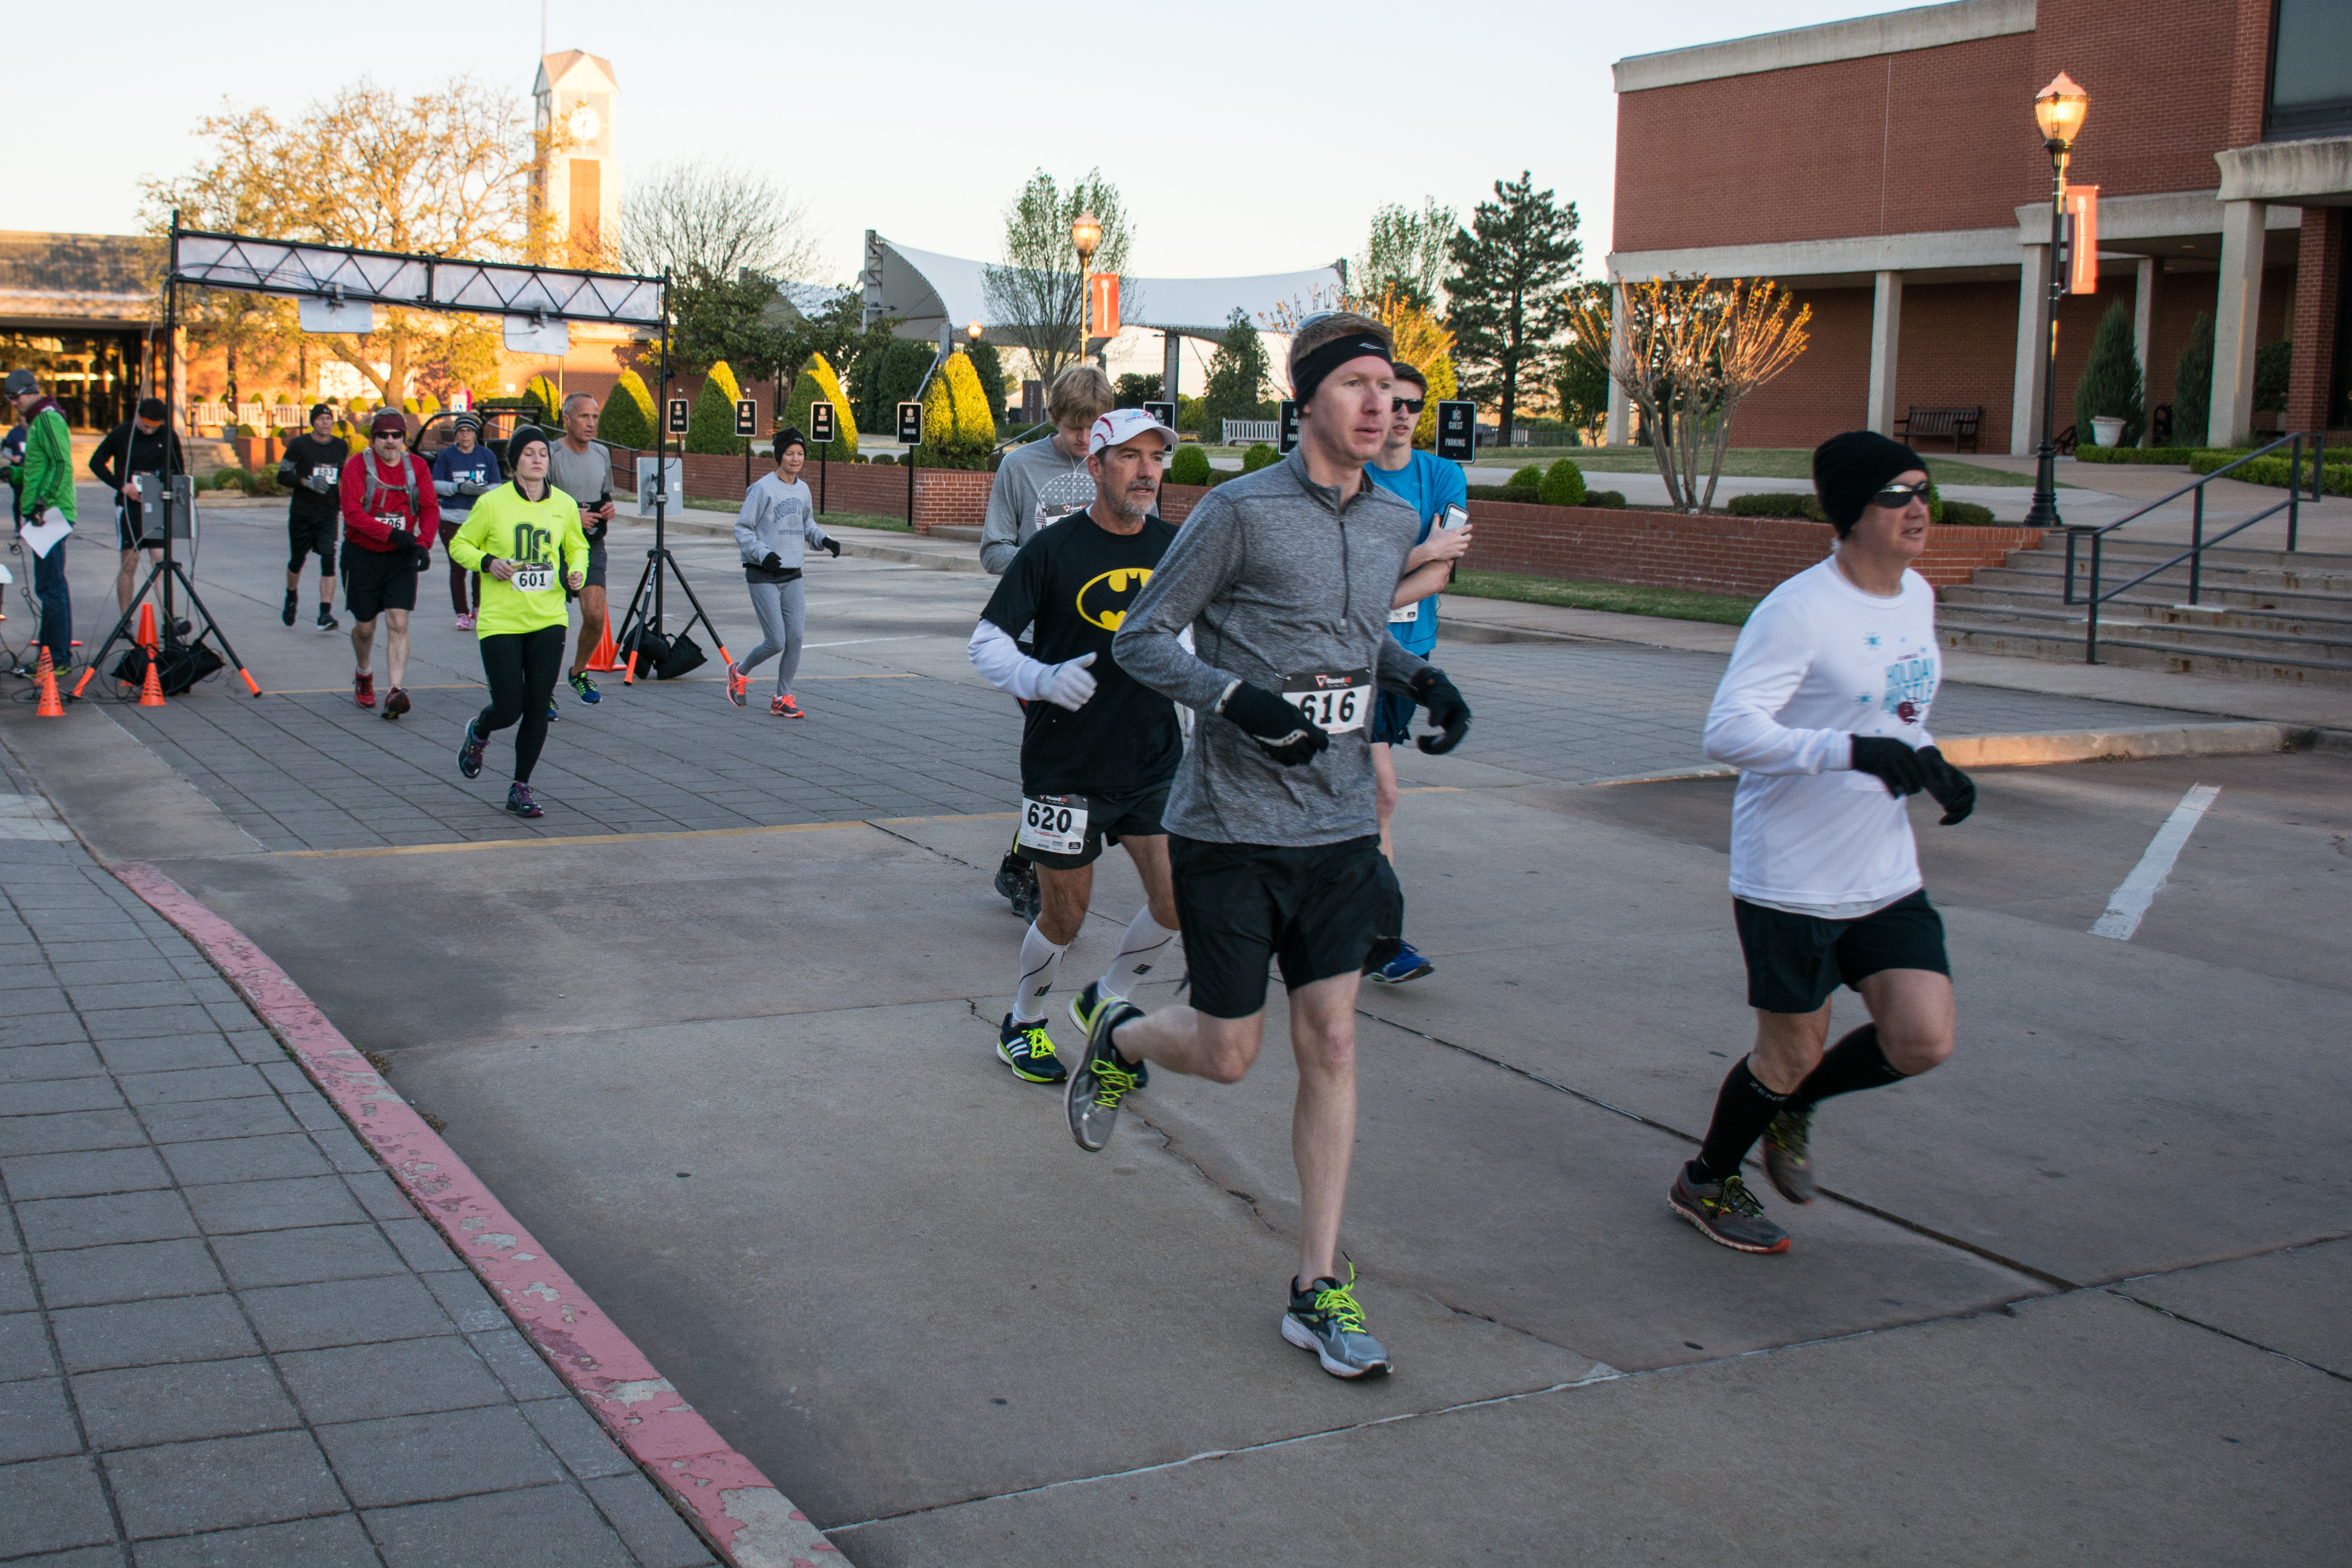 Those running the 30K started the Choose Your K race at 7:30 a.m. on Saturday morning. Photo by Abby Bellow.